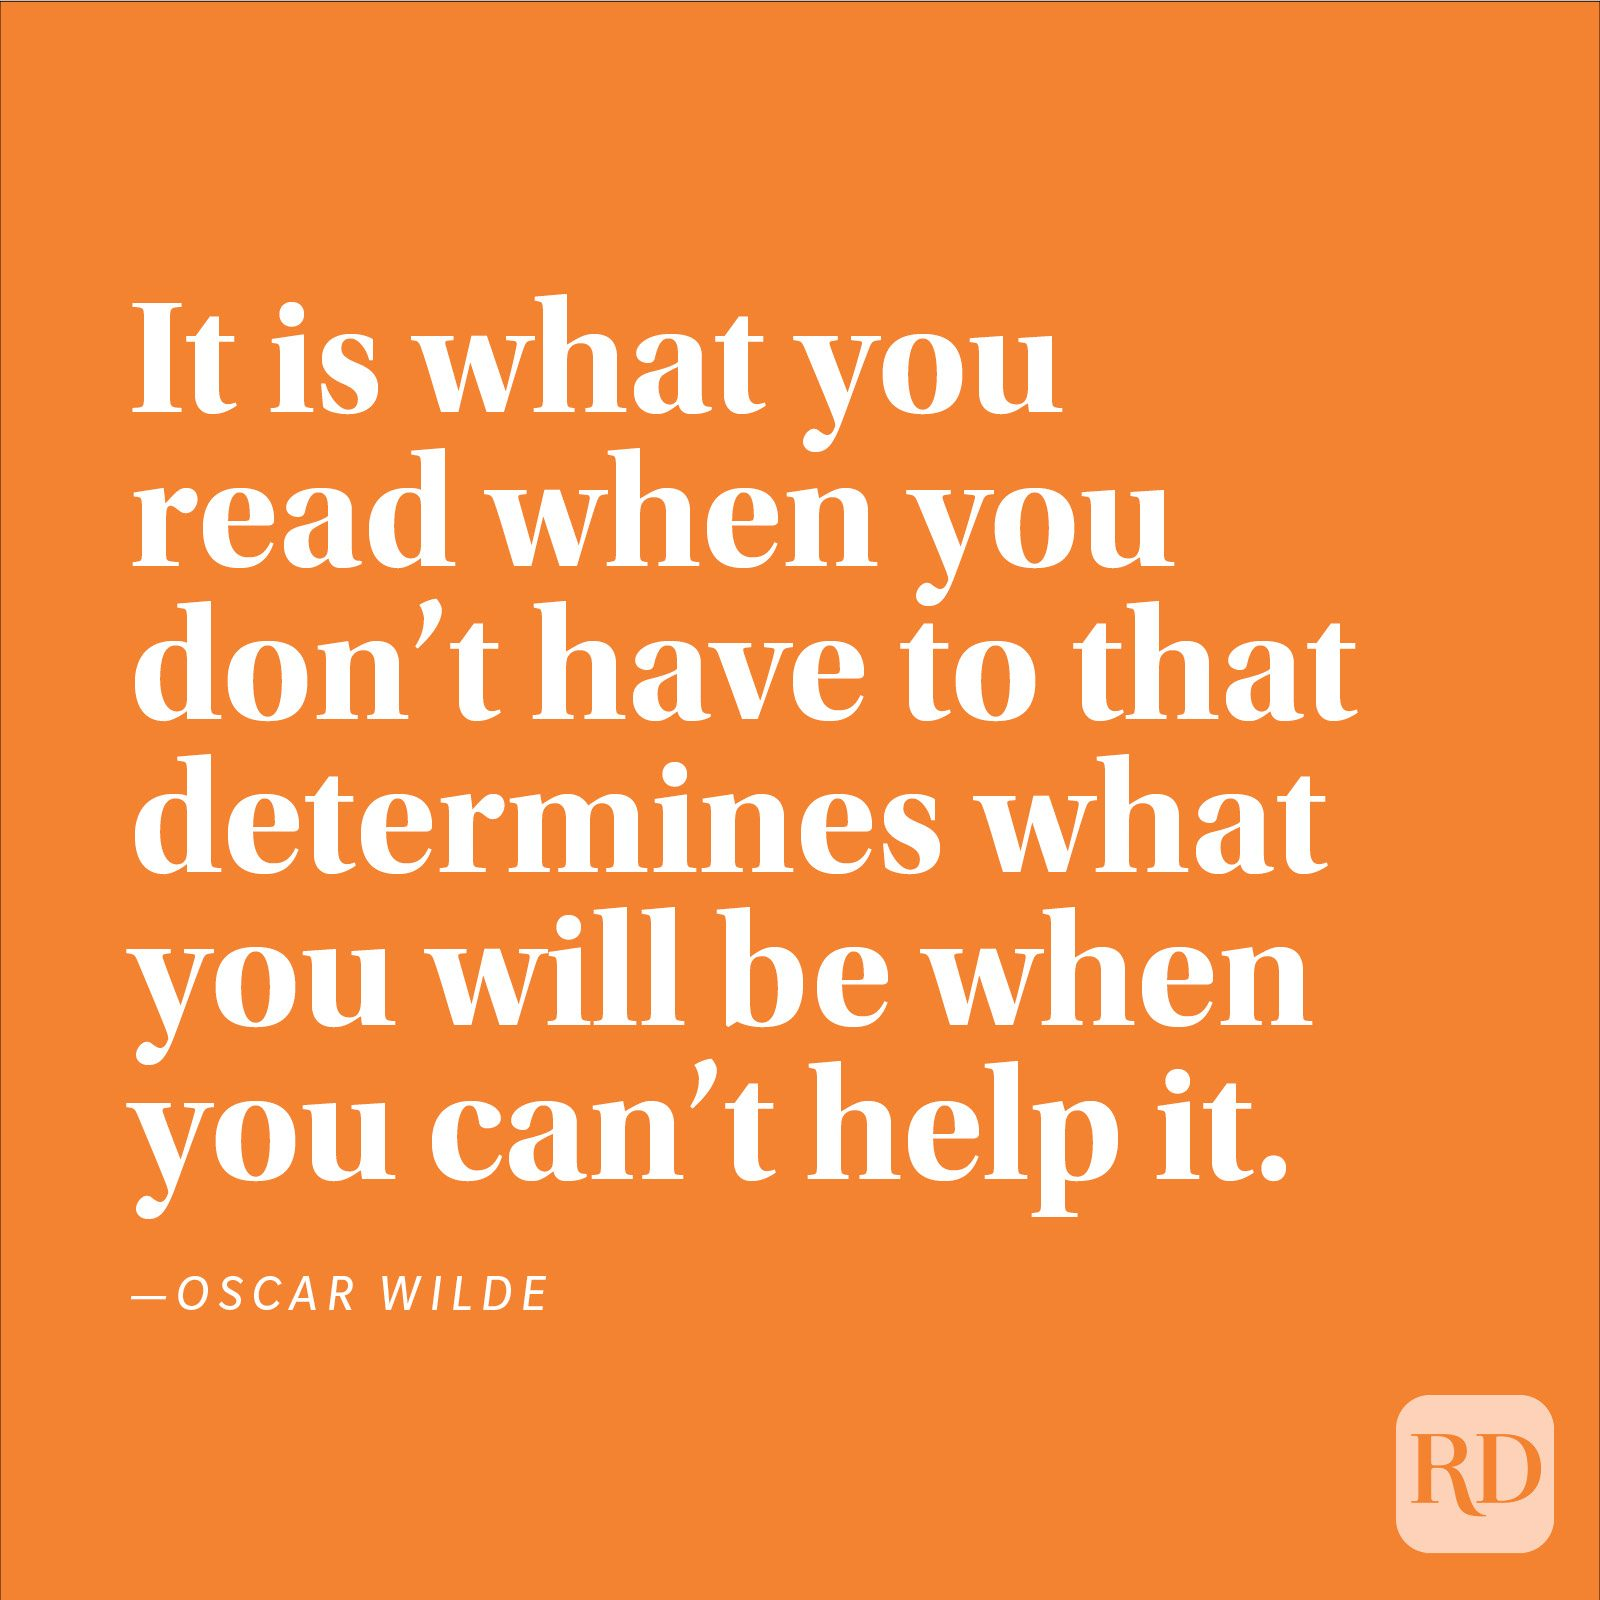 """It is what you read when you don't have to that determines what you will be when you can't help it."" —Oscar Wilde"